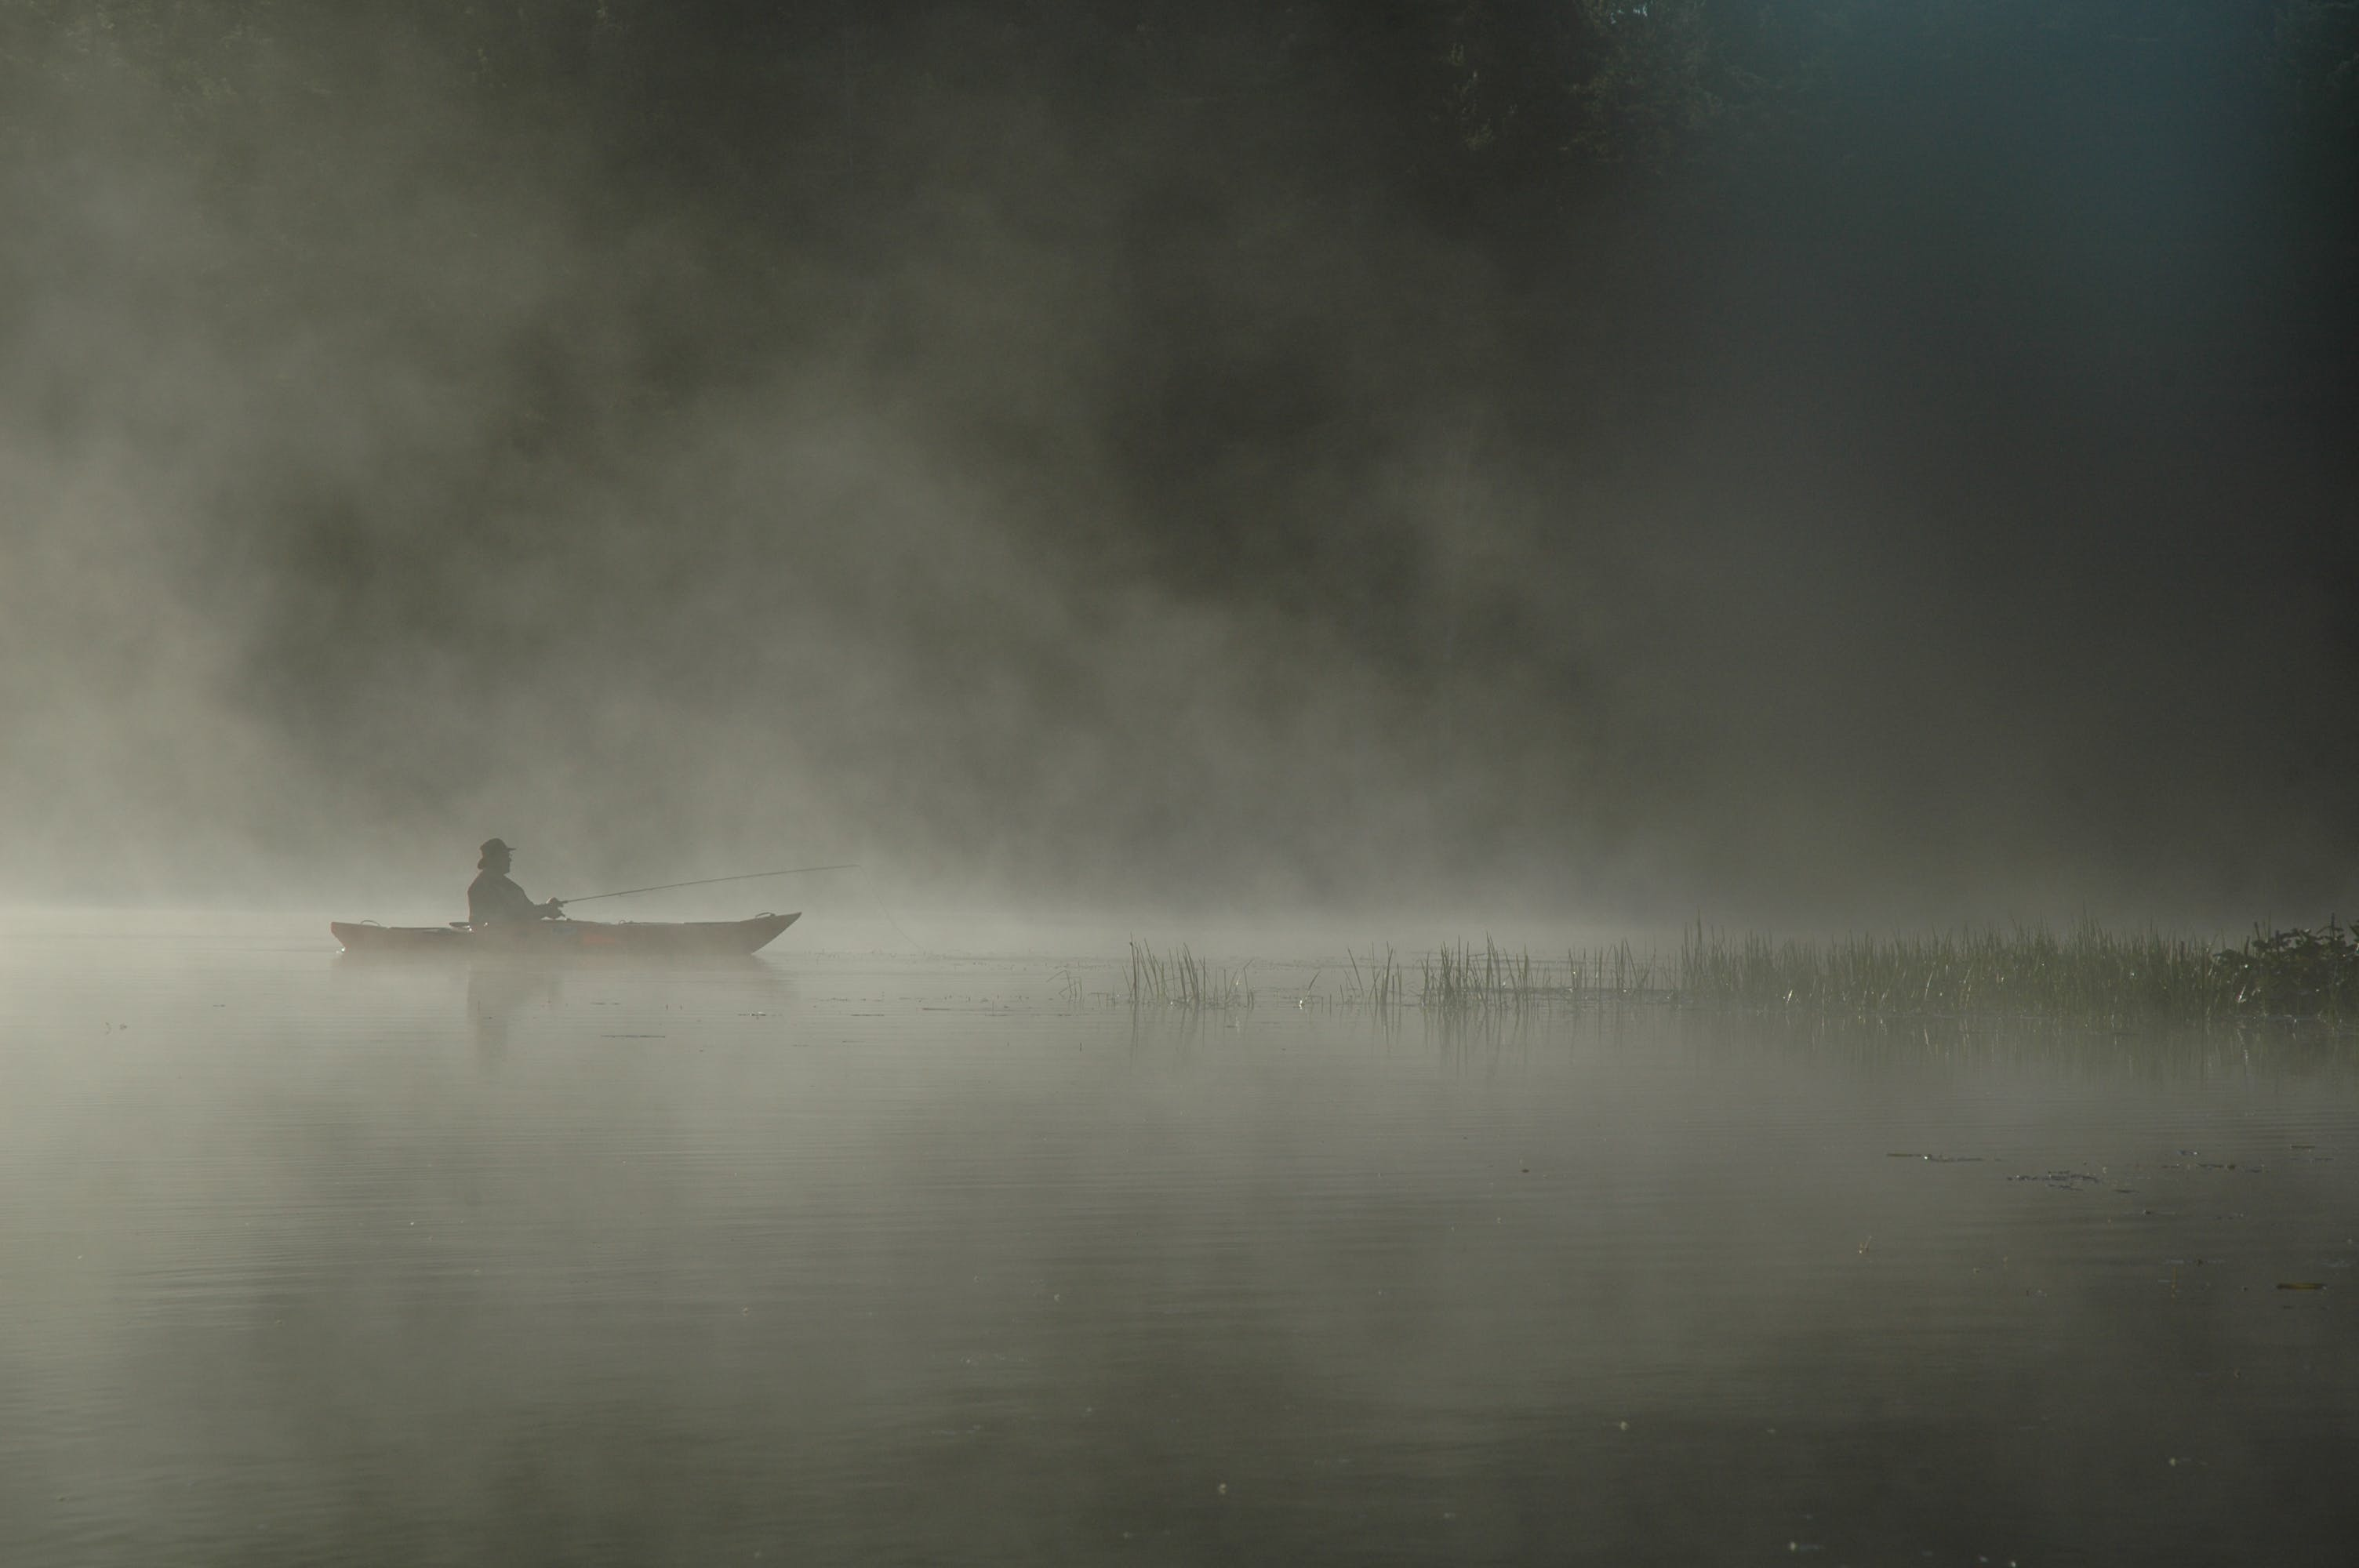 Person Riding Boat on Body of Water